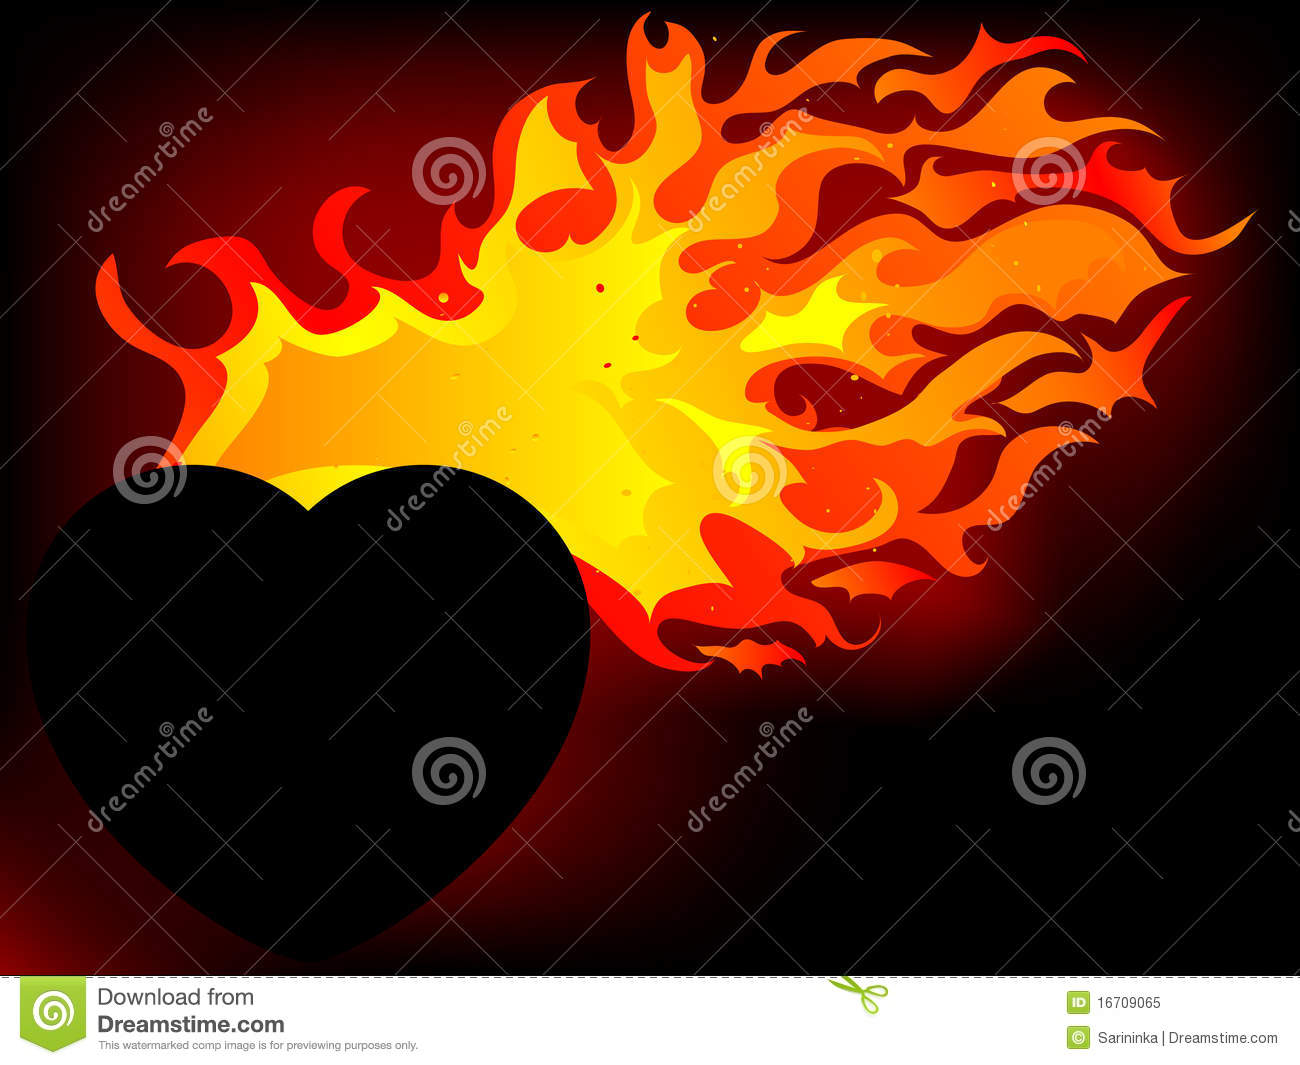 blazing heart royalty free stock photo image 16709065 red fireplace tiles 150x150mm glazed red fireplace wall